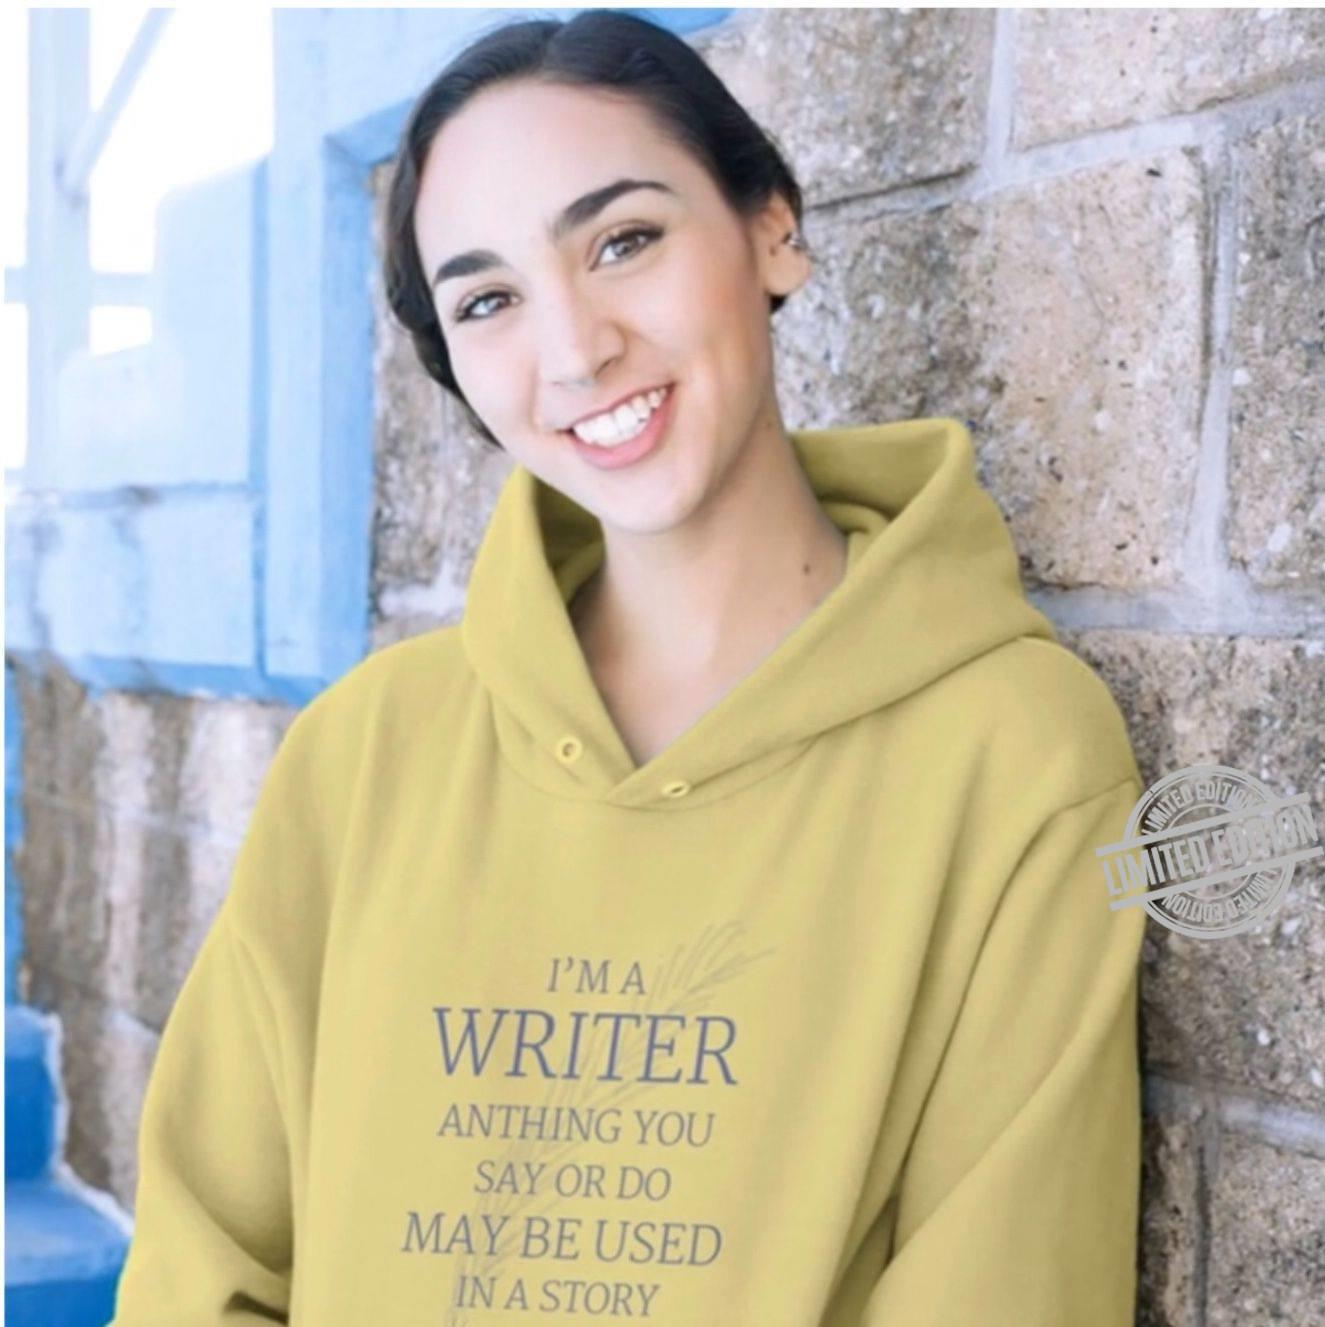 I'm A Writer Anthing You Say Or Do May Be Used In A Story Shirt